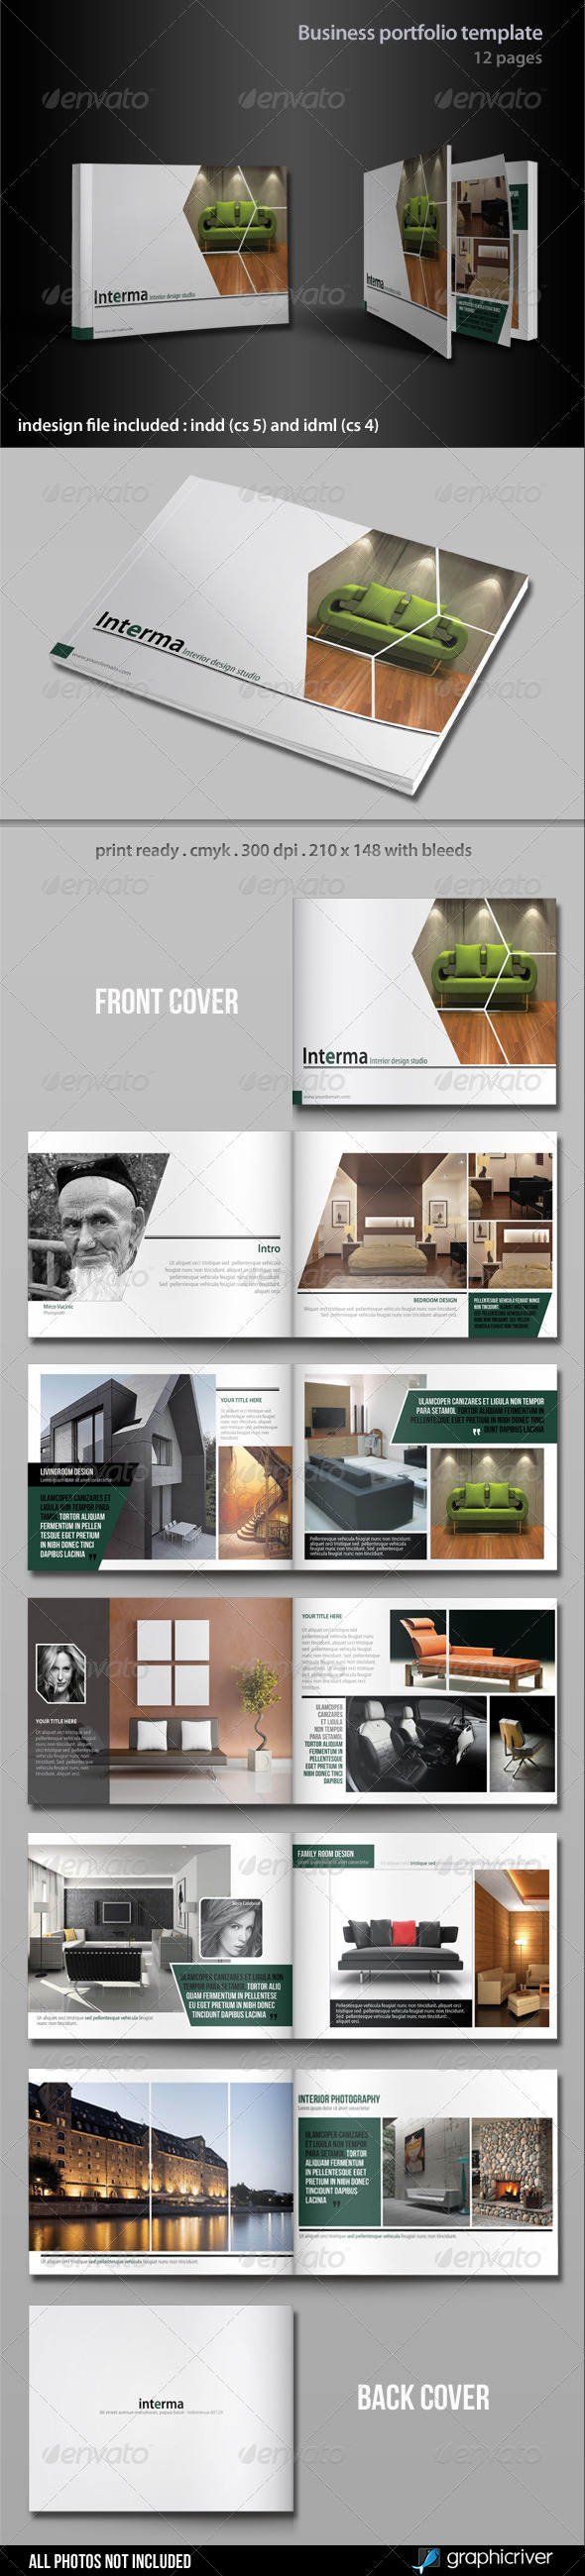 Awesome Indesign Template Torrent Ideas - Resume Ideas - namanasa.com